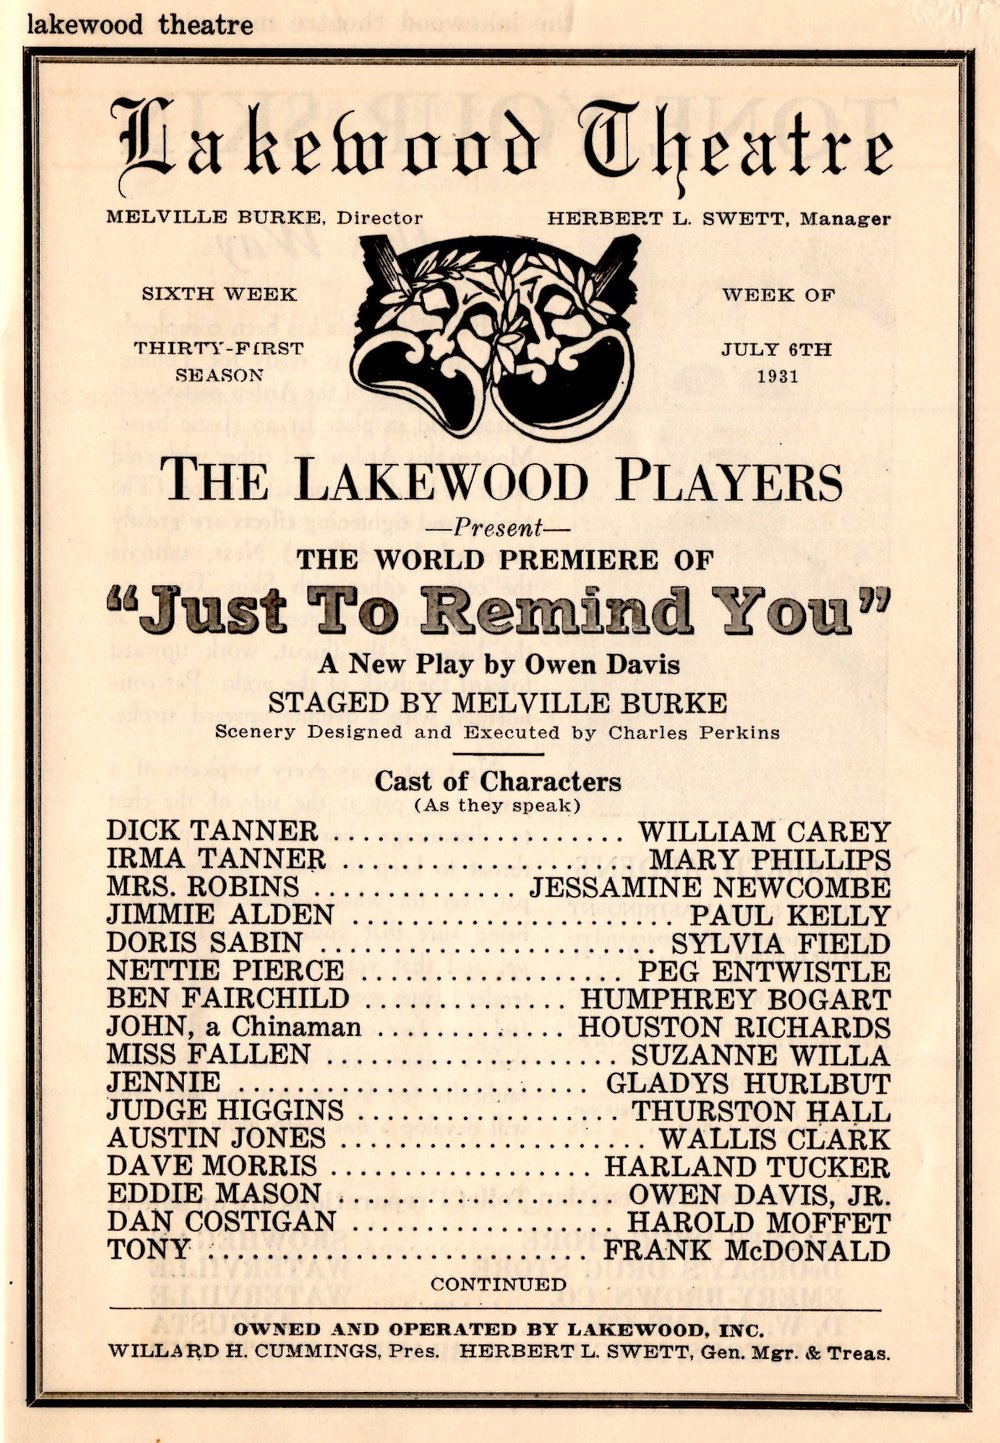 The playbill for the Lakewood Theatre play in which Humphrey Bogart played Peg's love interest.